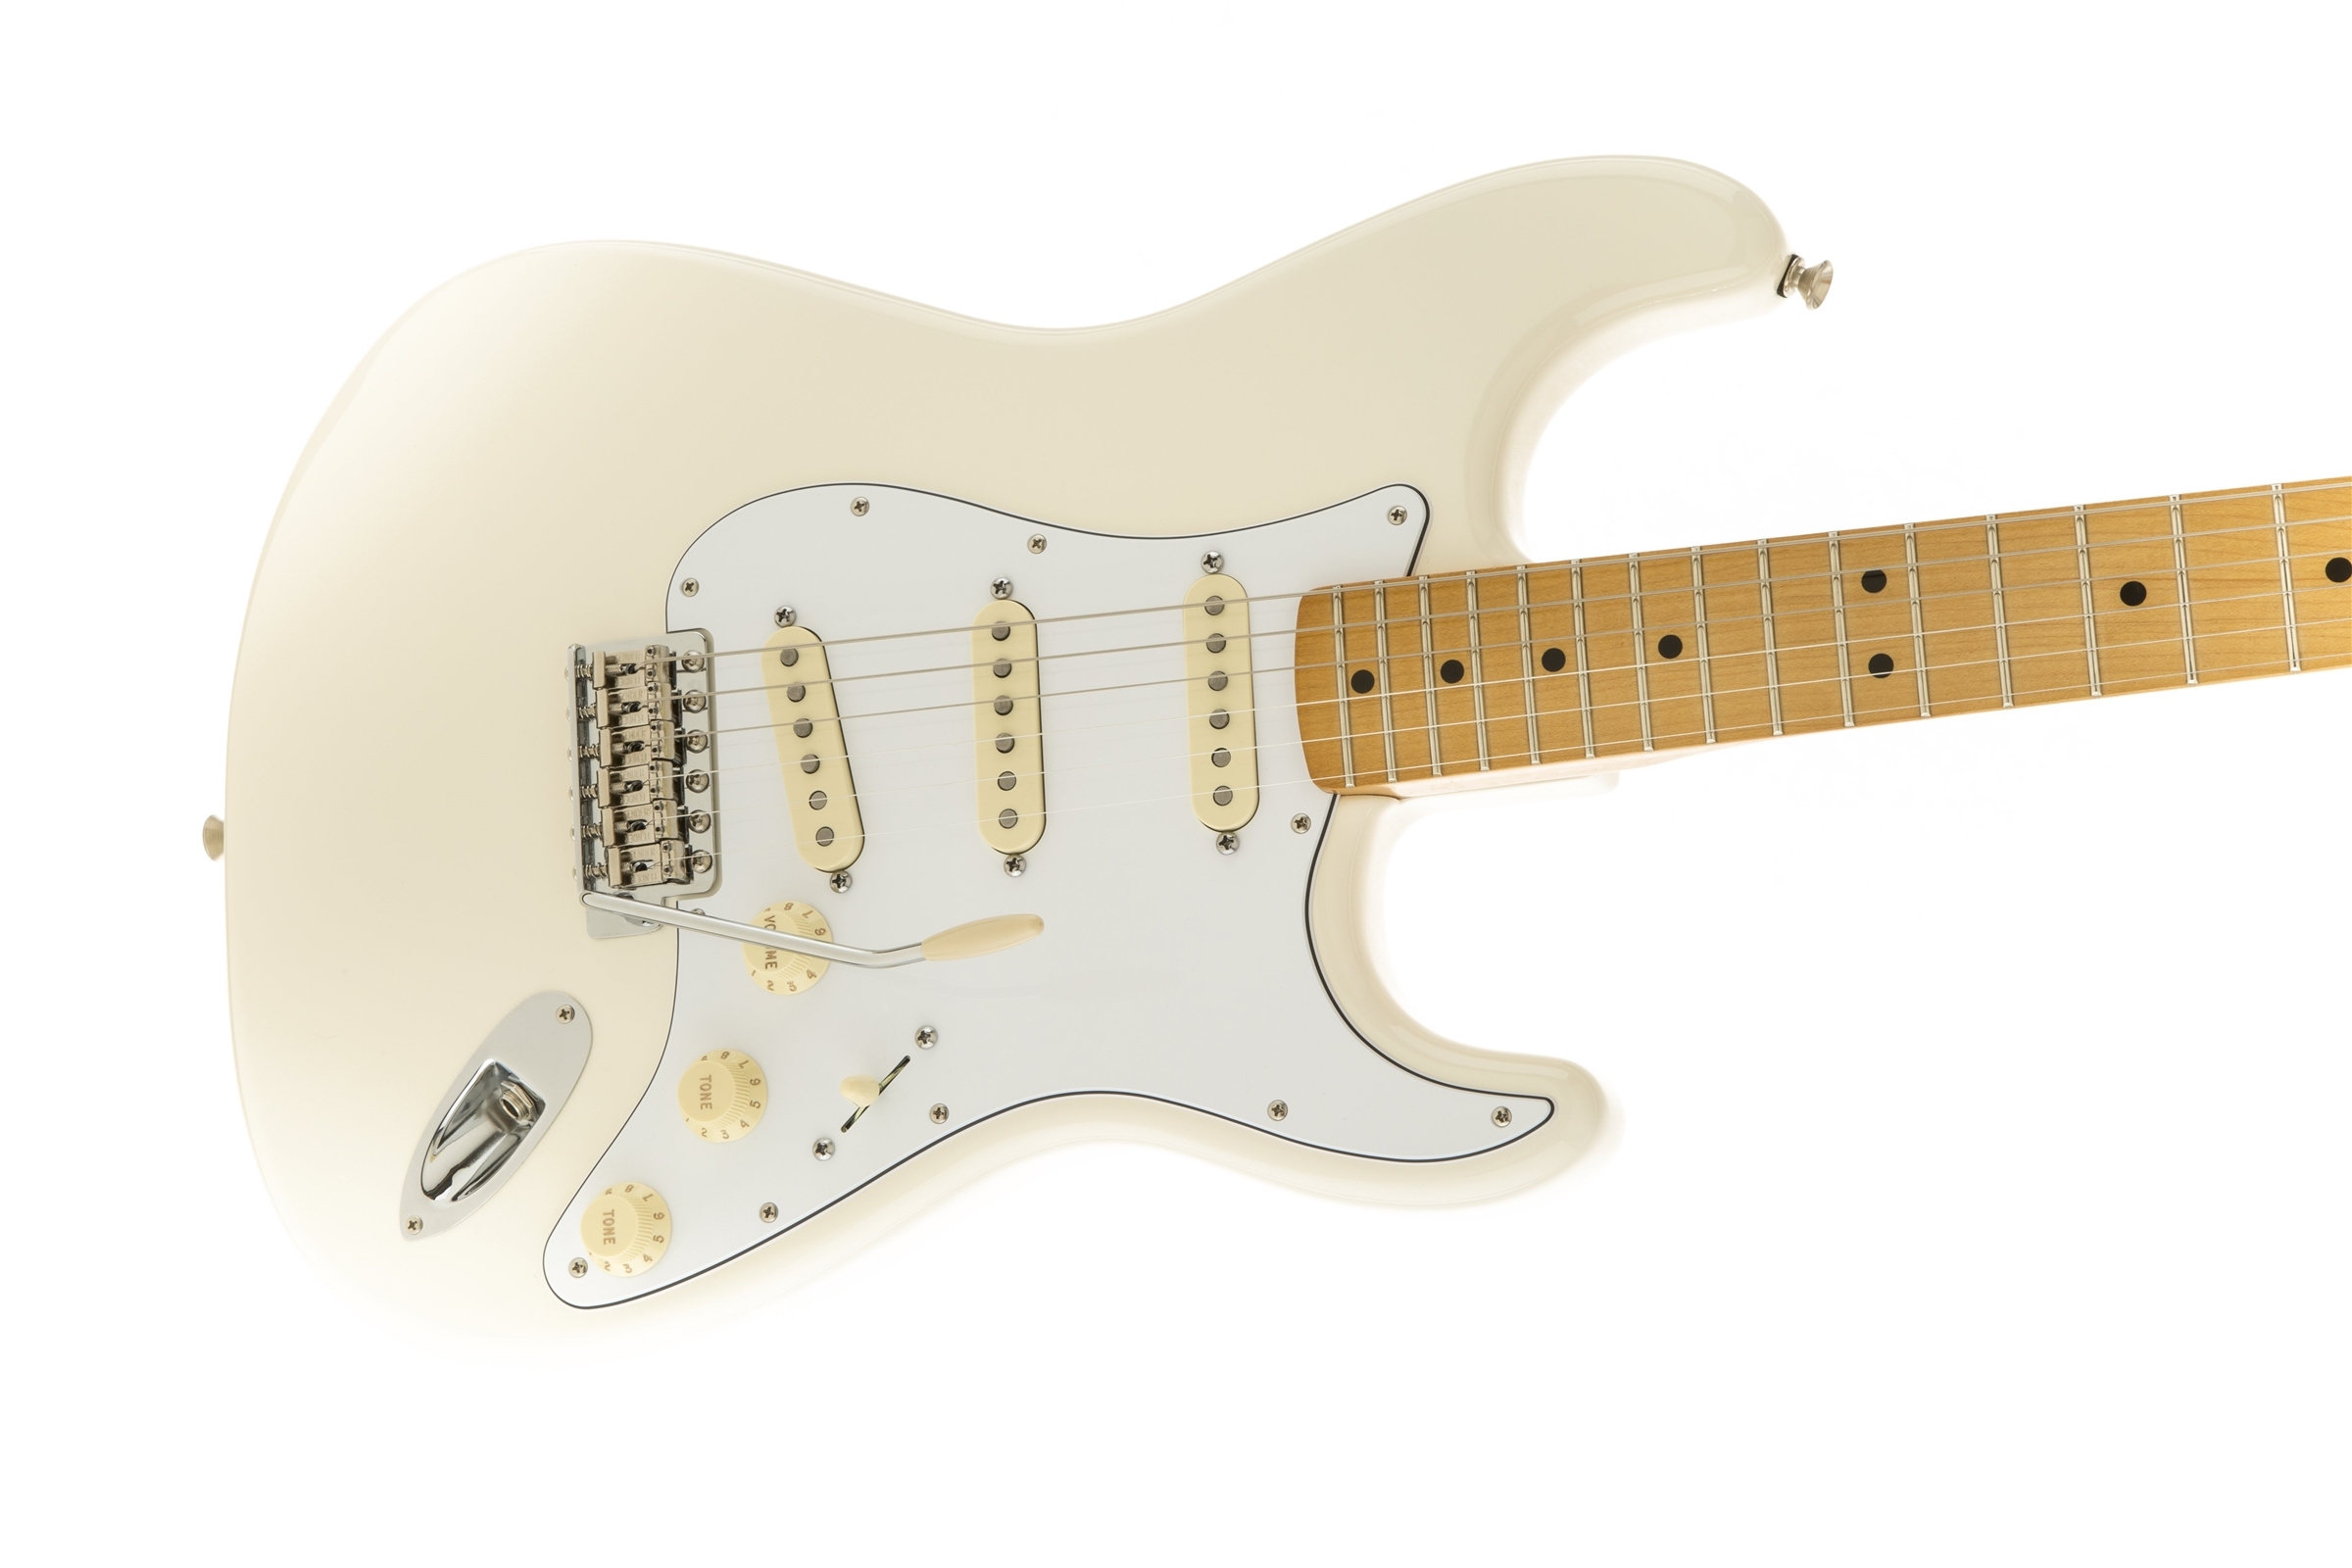 Jimi Hendrix Stratocaster Electric Guitars Return From Diagram Of A Nylon String Guitar Tap To Expand